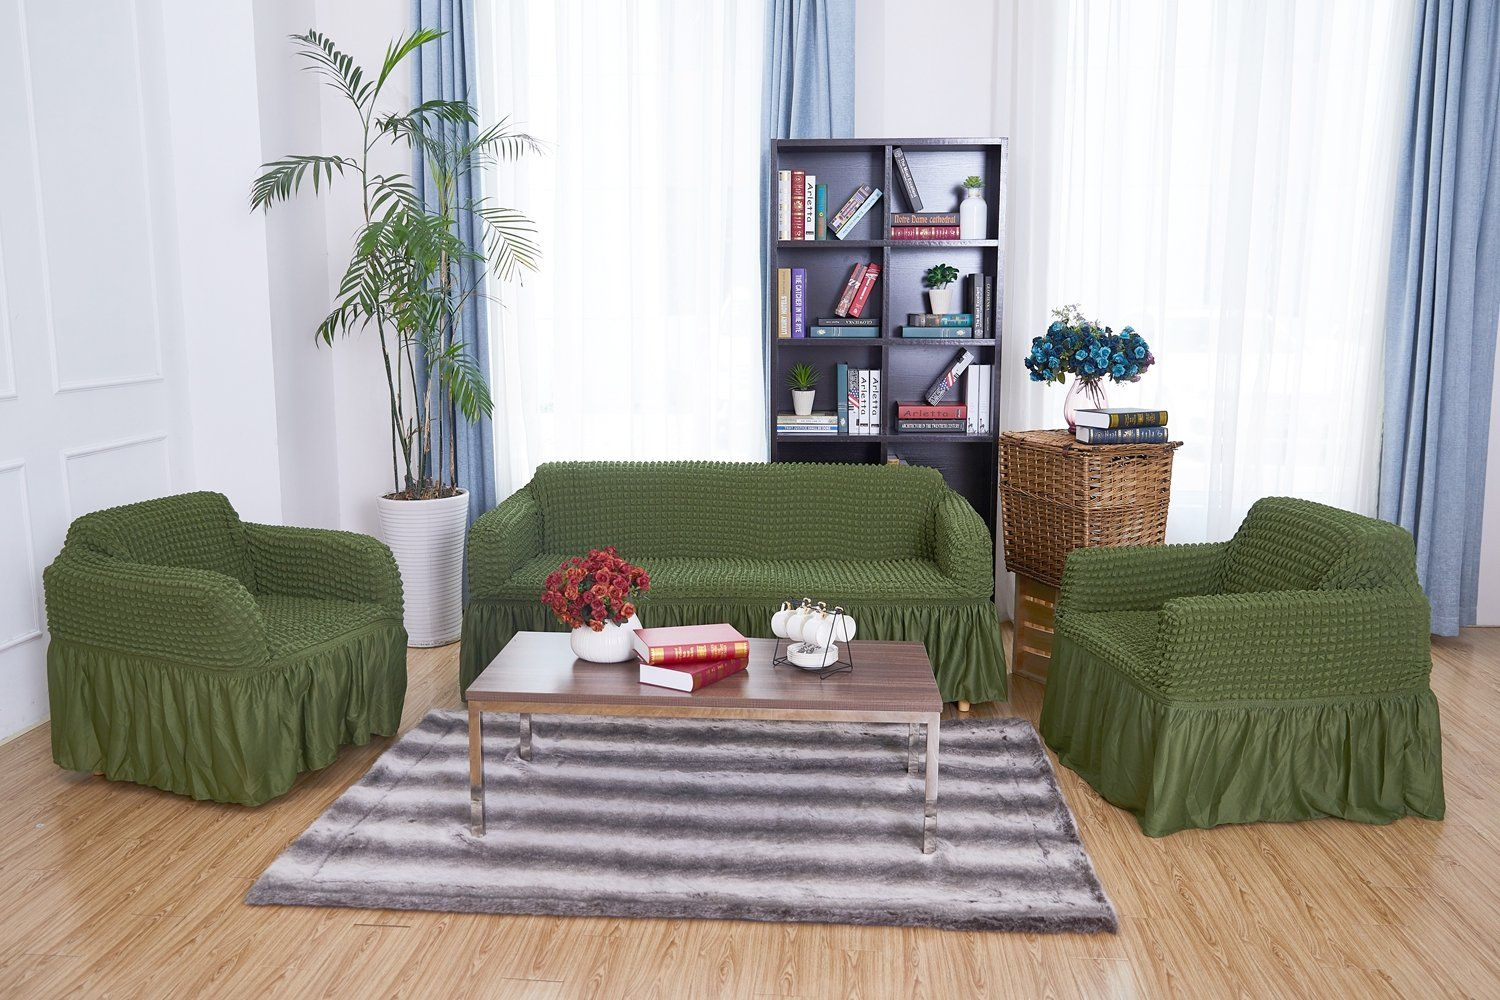 Niceec 1piece Stretchable Easy Fit Sofa Cover Durable Furniture Slipcover In Country Style Made Of Mach Furniture Slipcovers Durable Furniture Sofas And Chairs